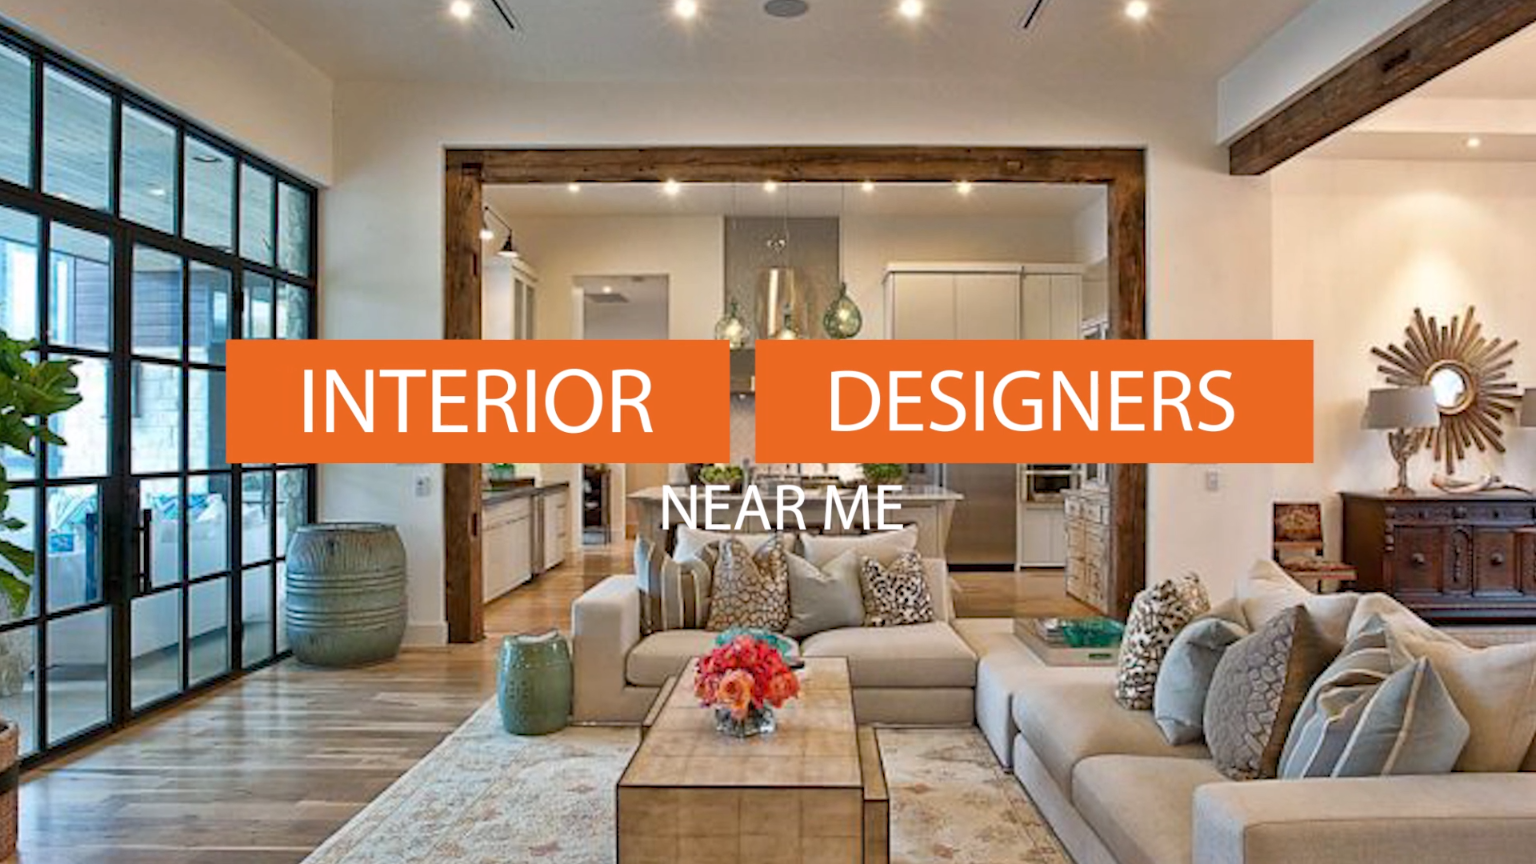 Interior designers near me 7 best ways to get local design help